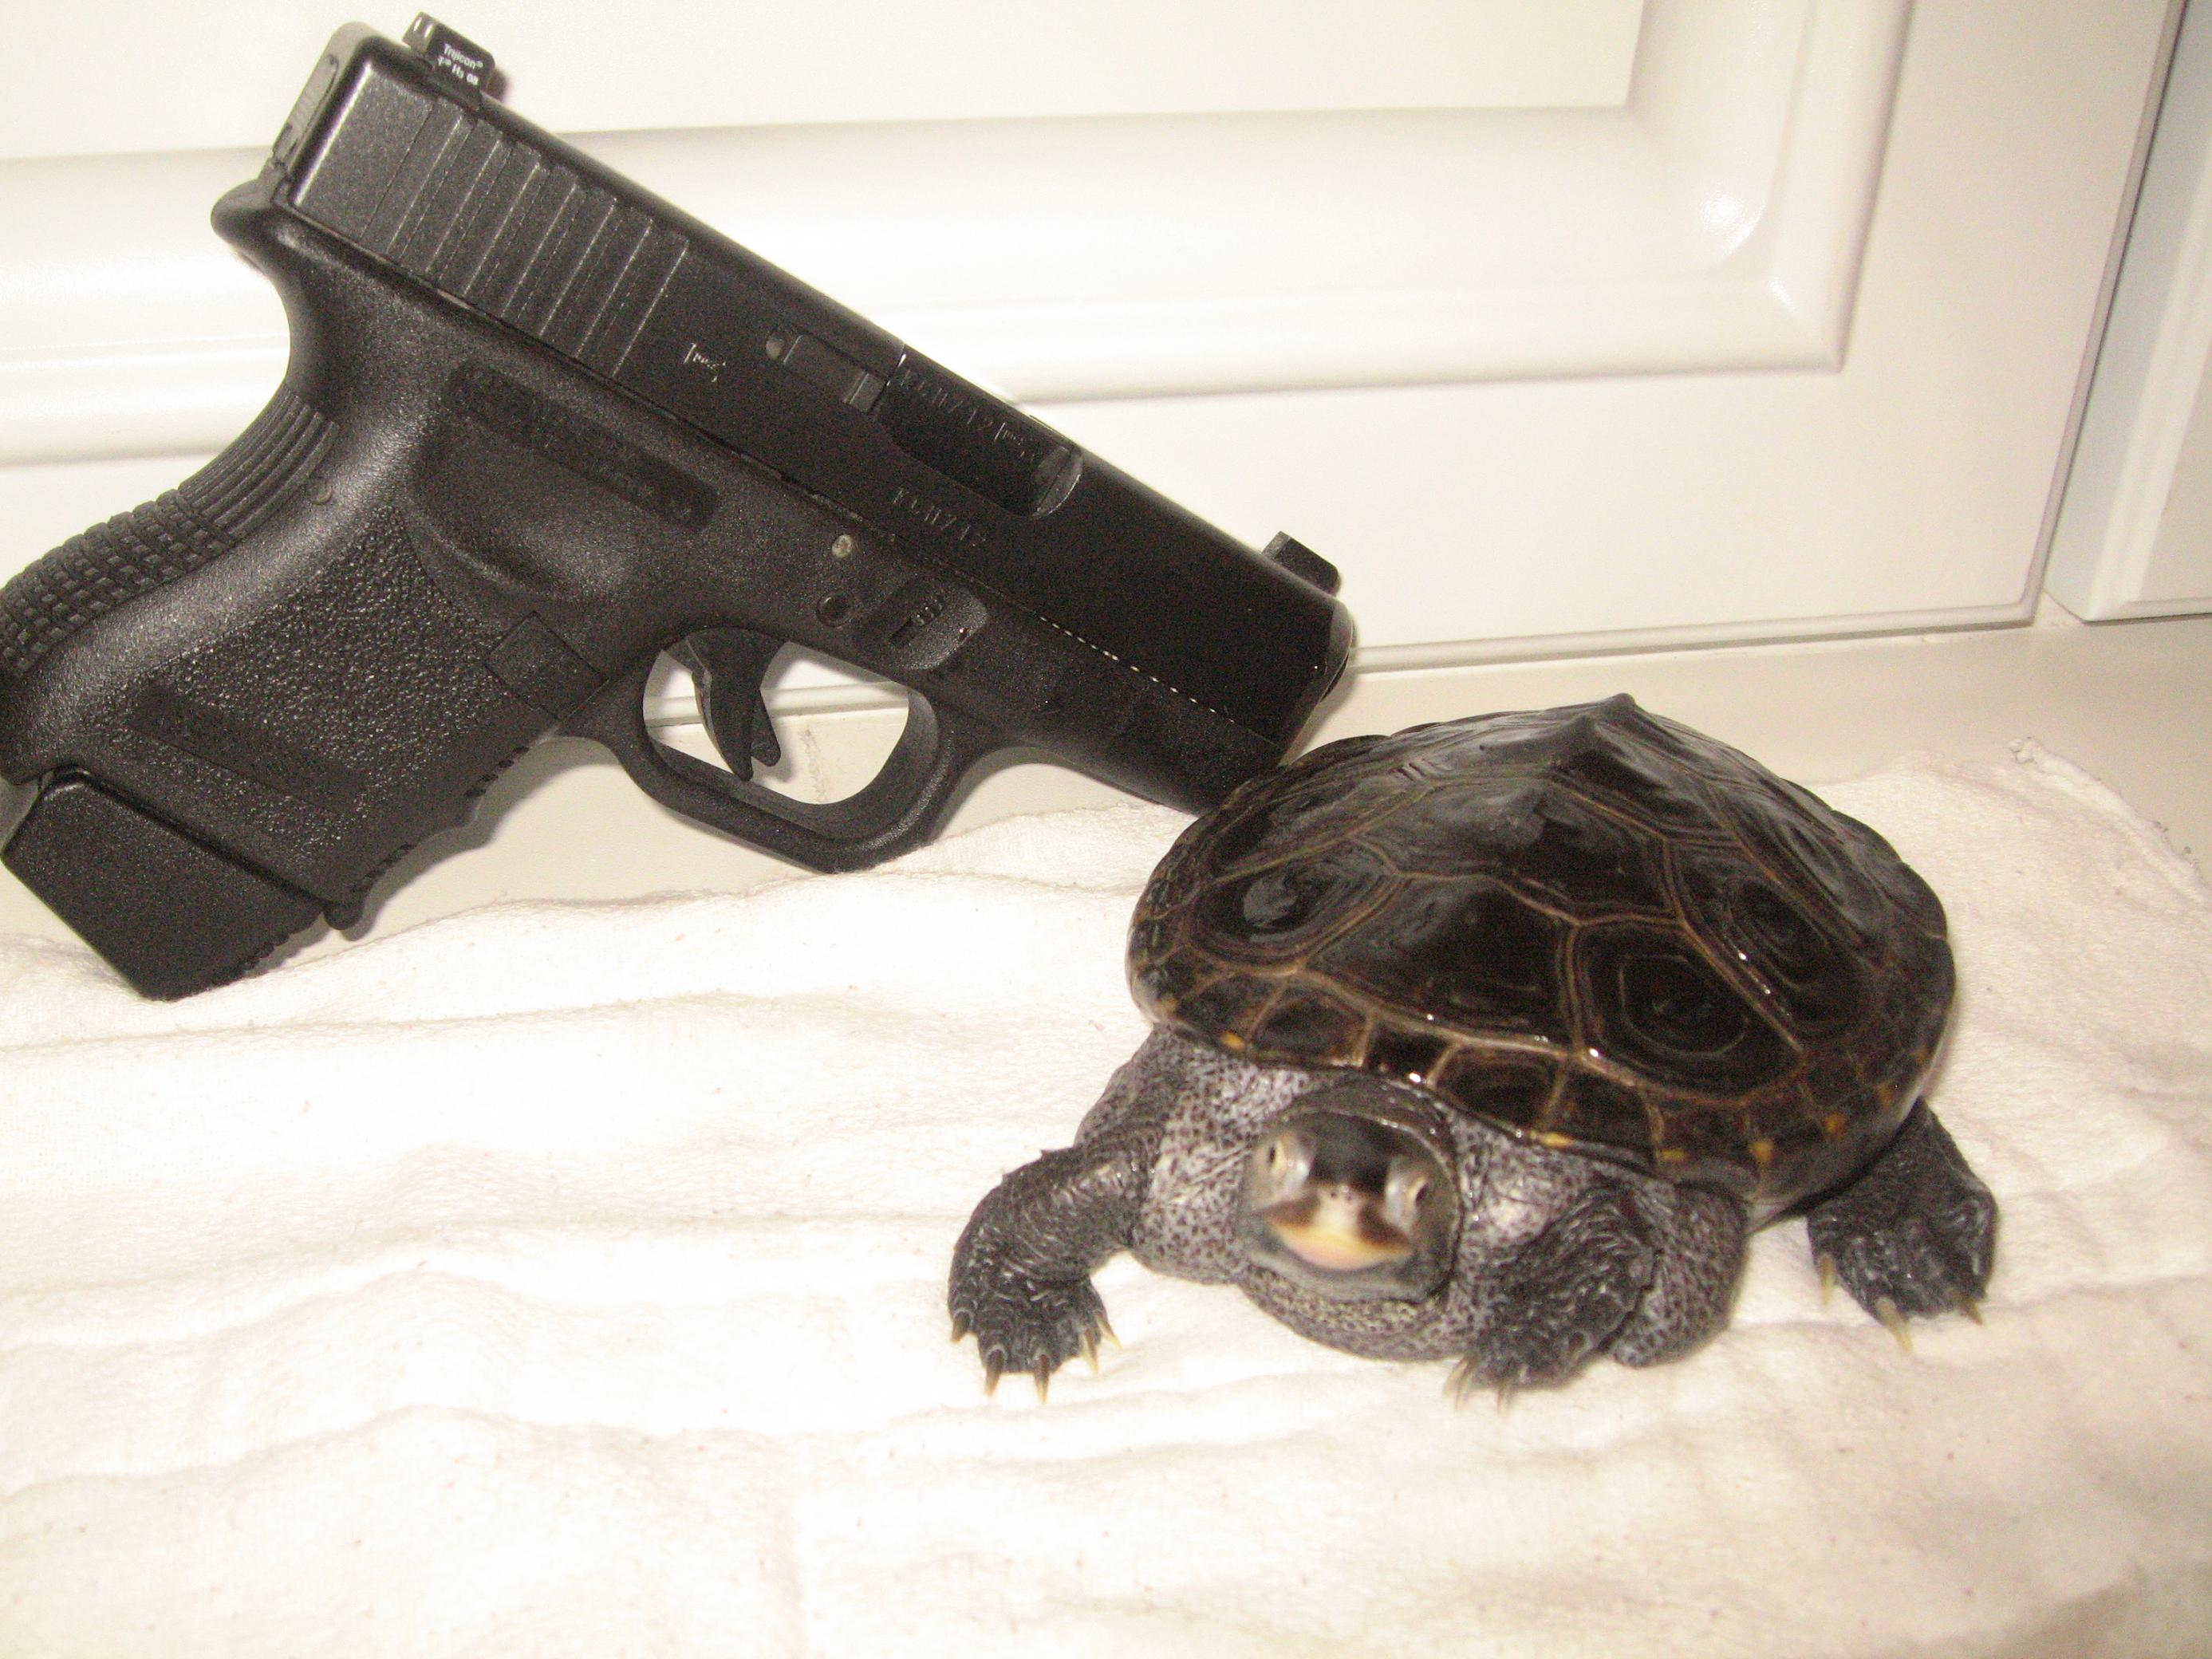 Let's see pics of the Turtle that guards your front door...-turtle-015.jpg